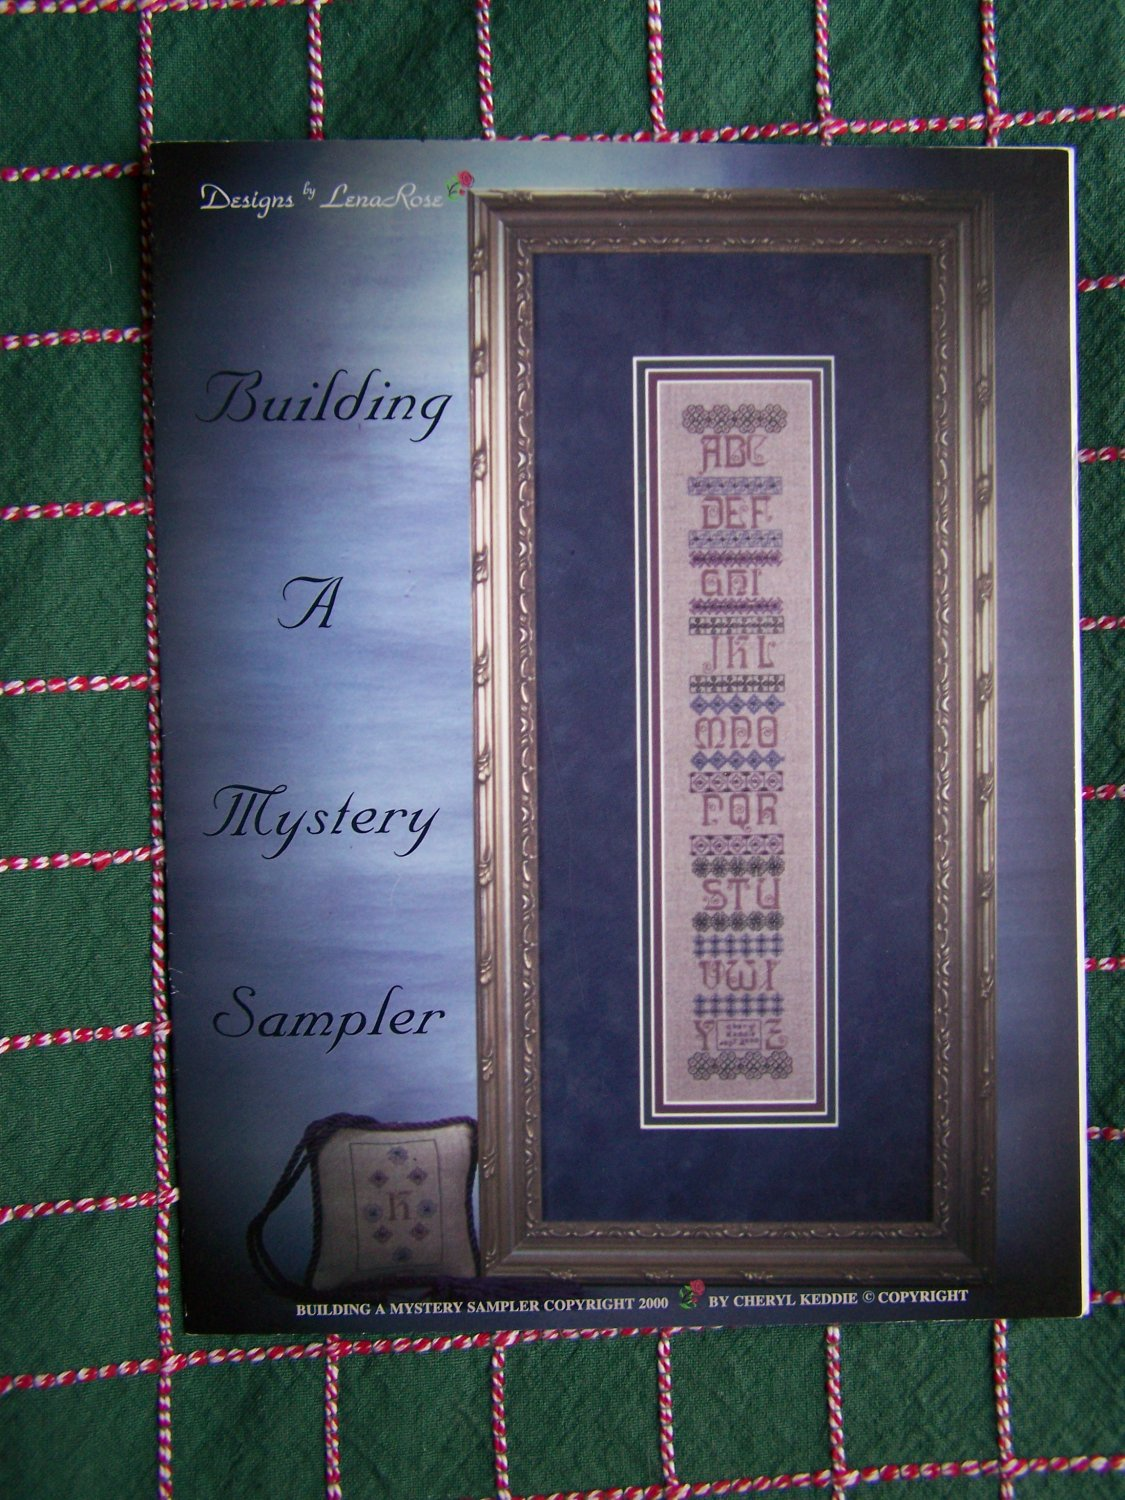 New Lena Rose Cross Stitch Pattern Building a Mystery Sampler Designer Signed Autographed Note